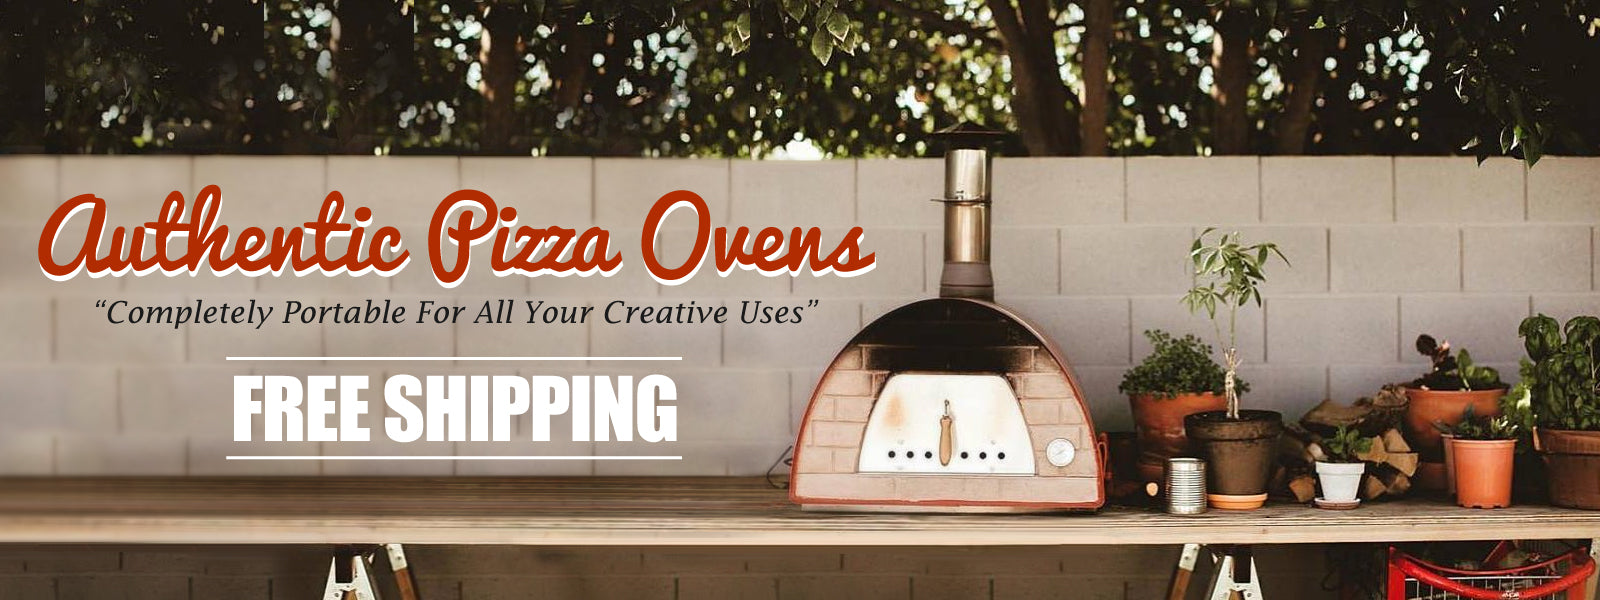 Authentic Pizza Ovens Maximus Arena Portable Pizza Ovens